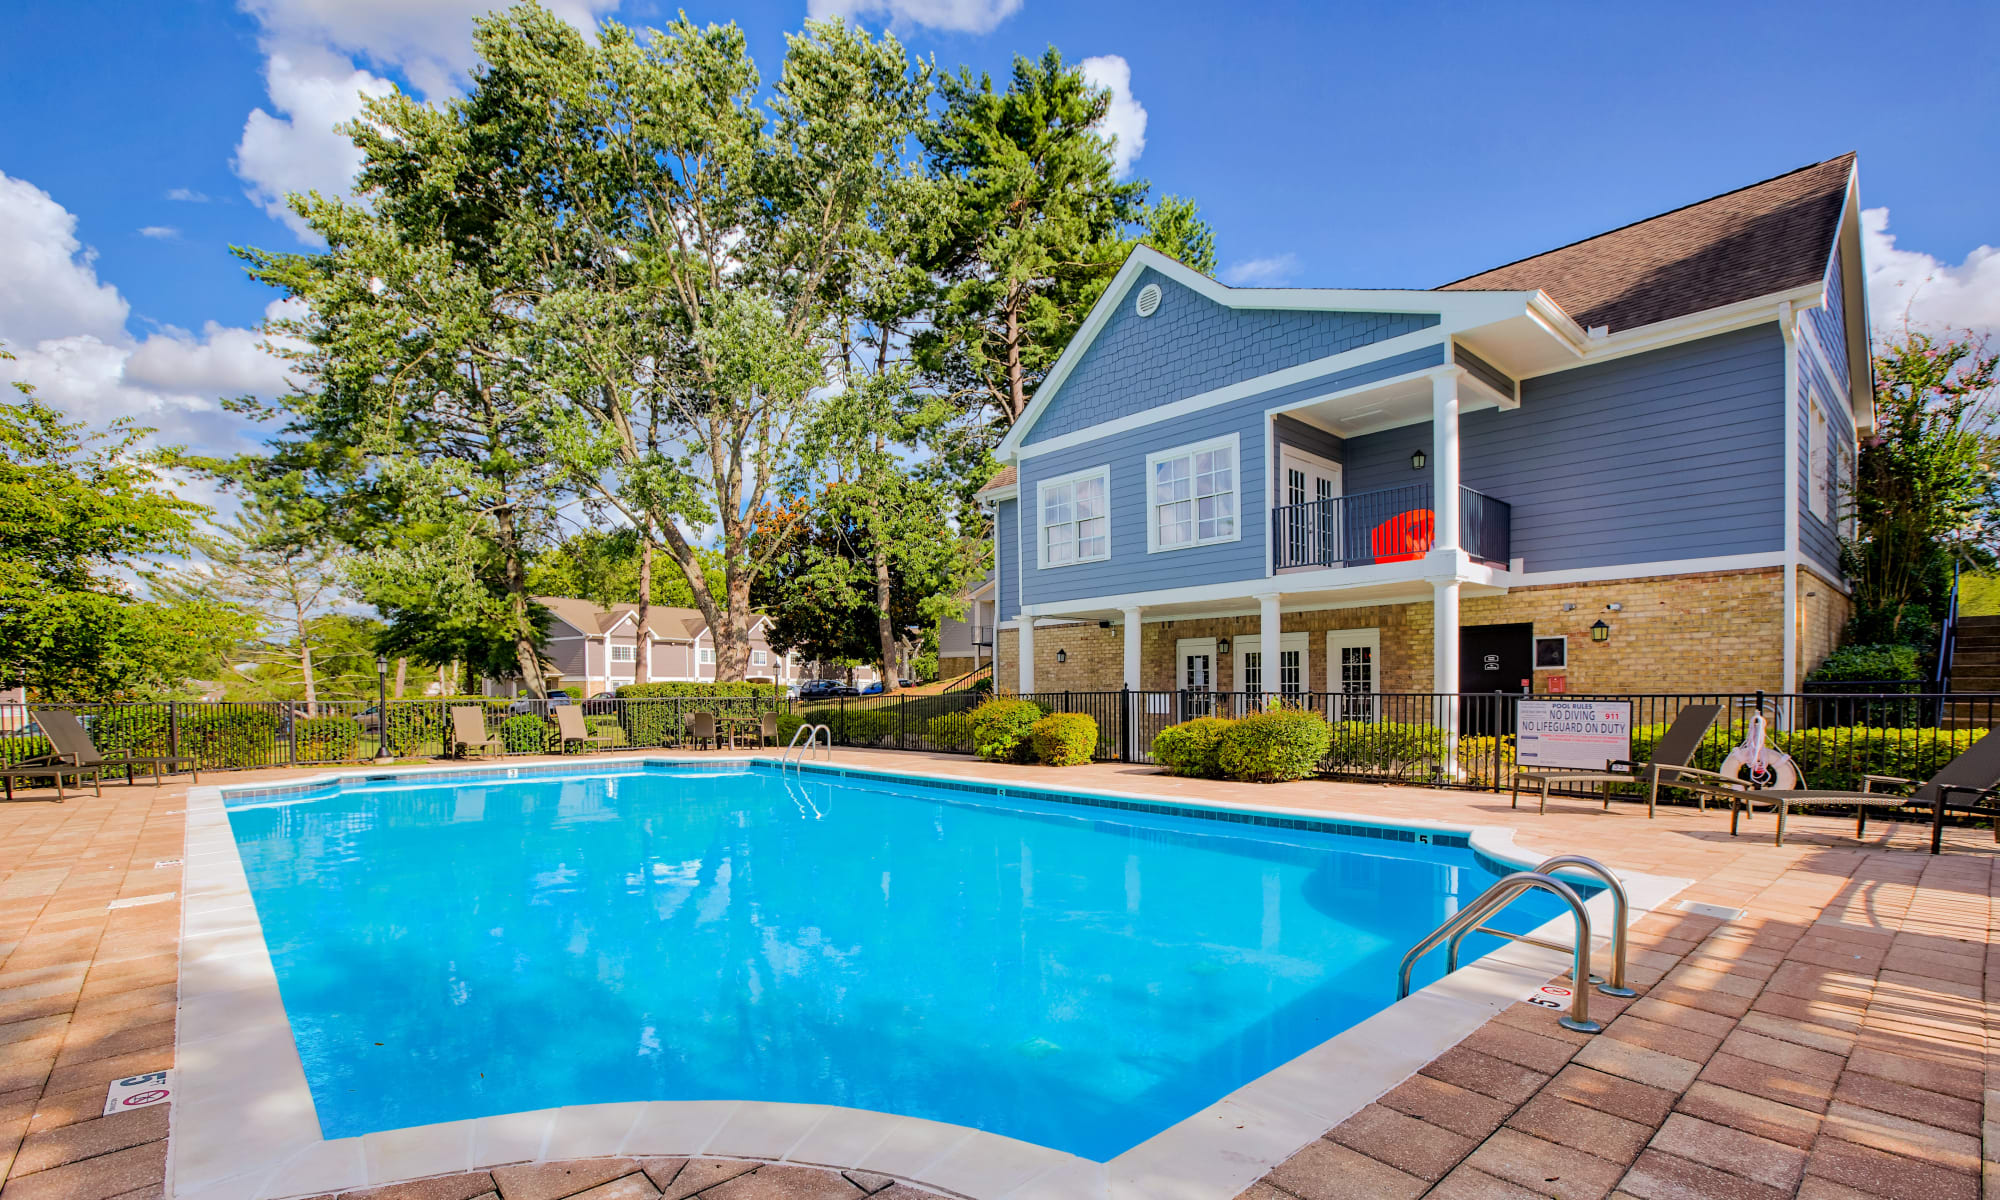 Swimming pool at 865 Bellevue Apartments in Nashville, Tennessee